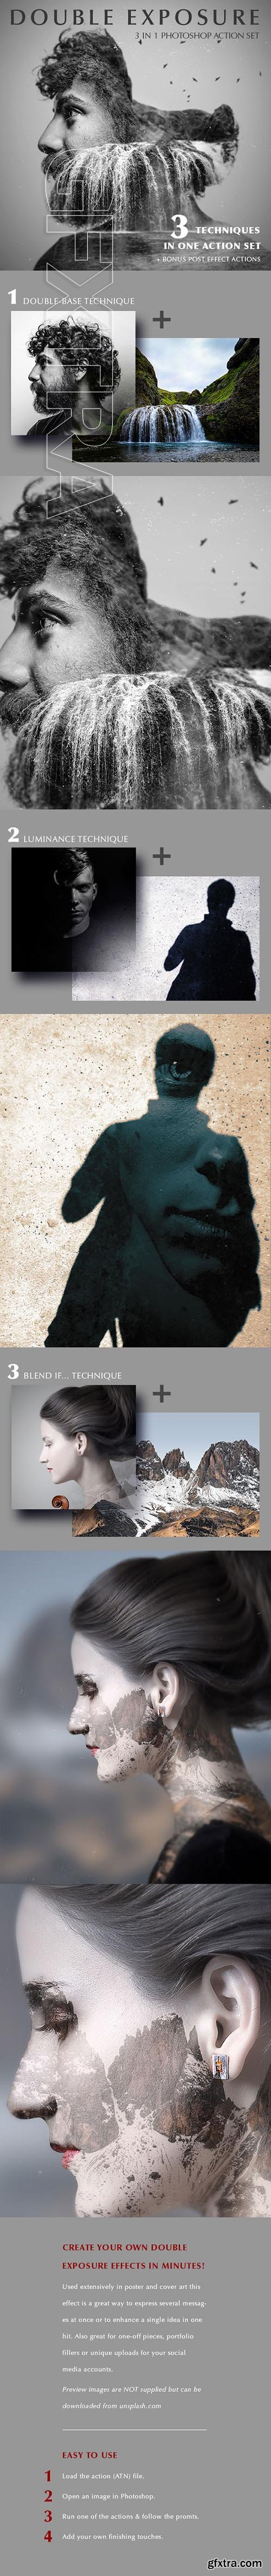 GraphicRiver - Double Exposure Action 21930305